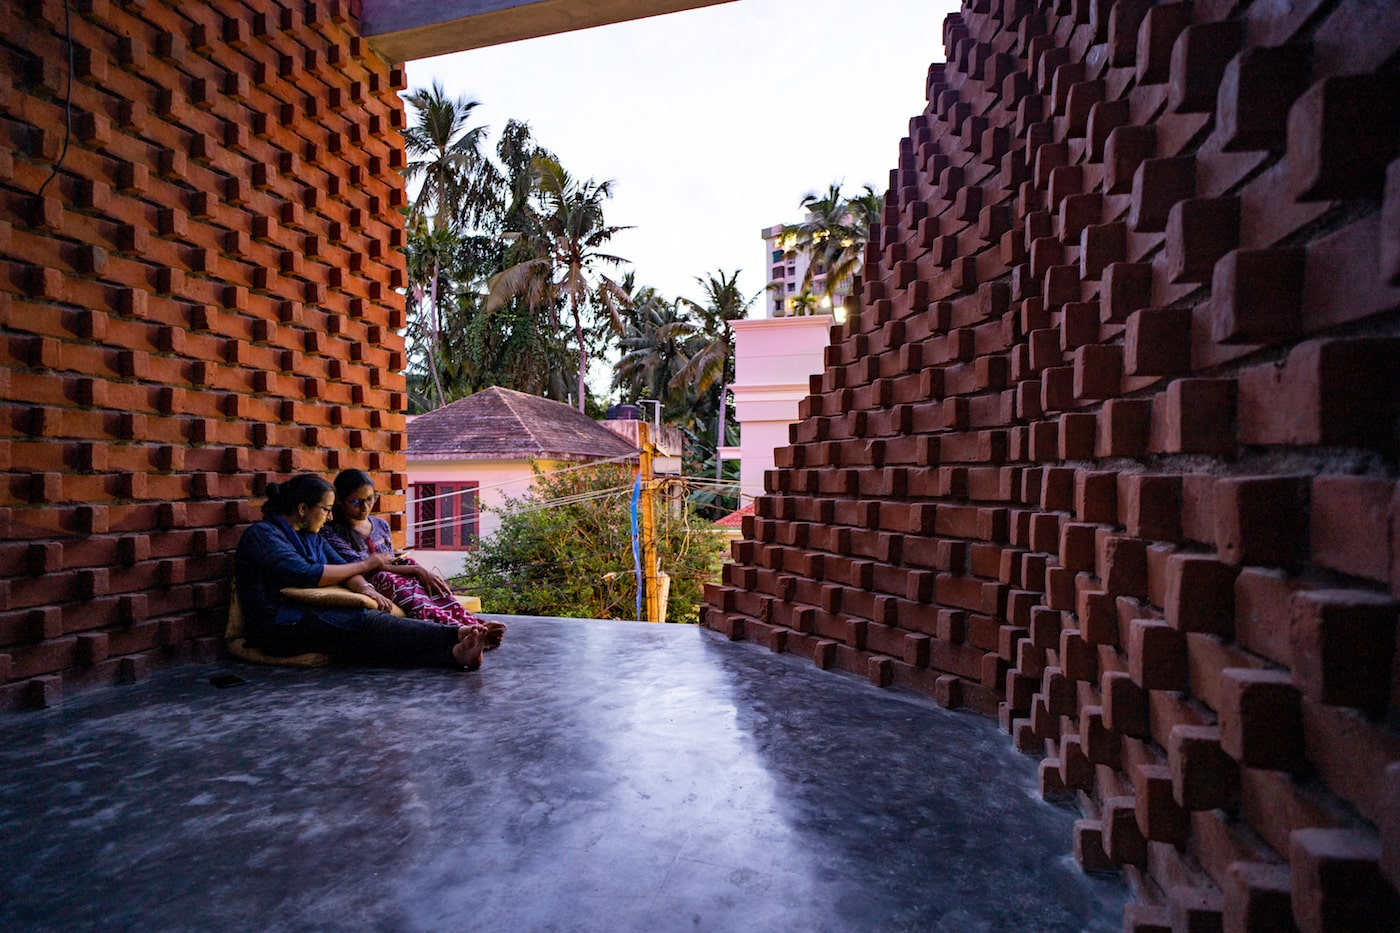 Woman sitting on concrete floor looking out through brick walls of Pirouette House